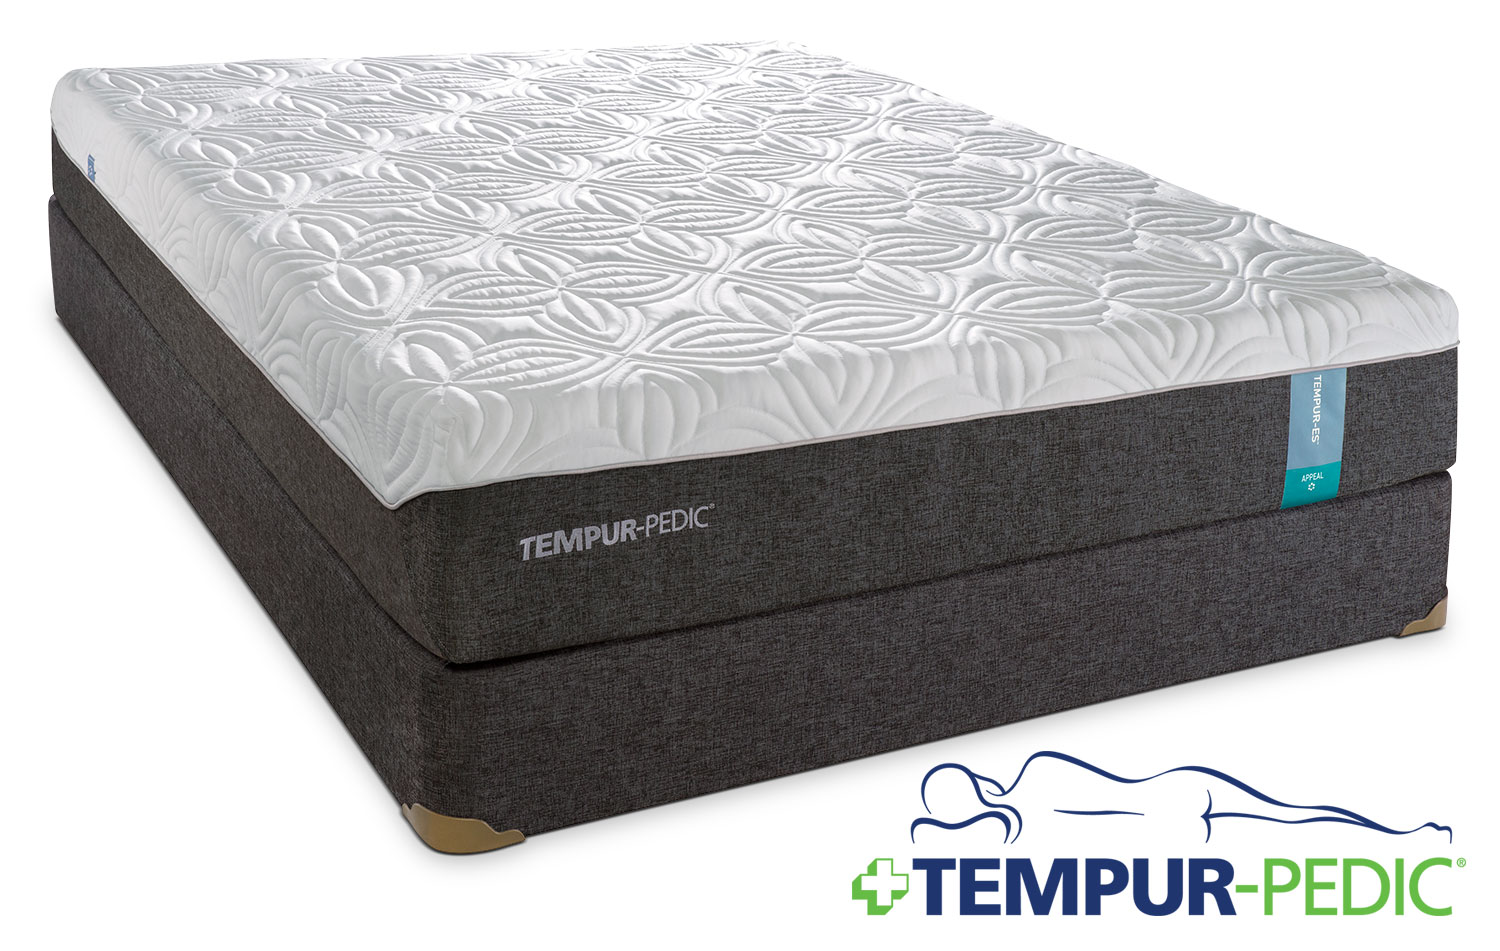 Tempur-Pedic Appeal Full Mattress /Boxspring Set